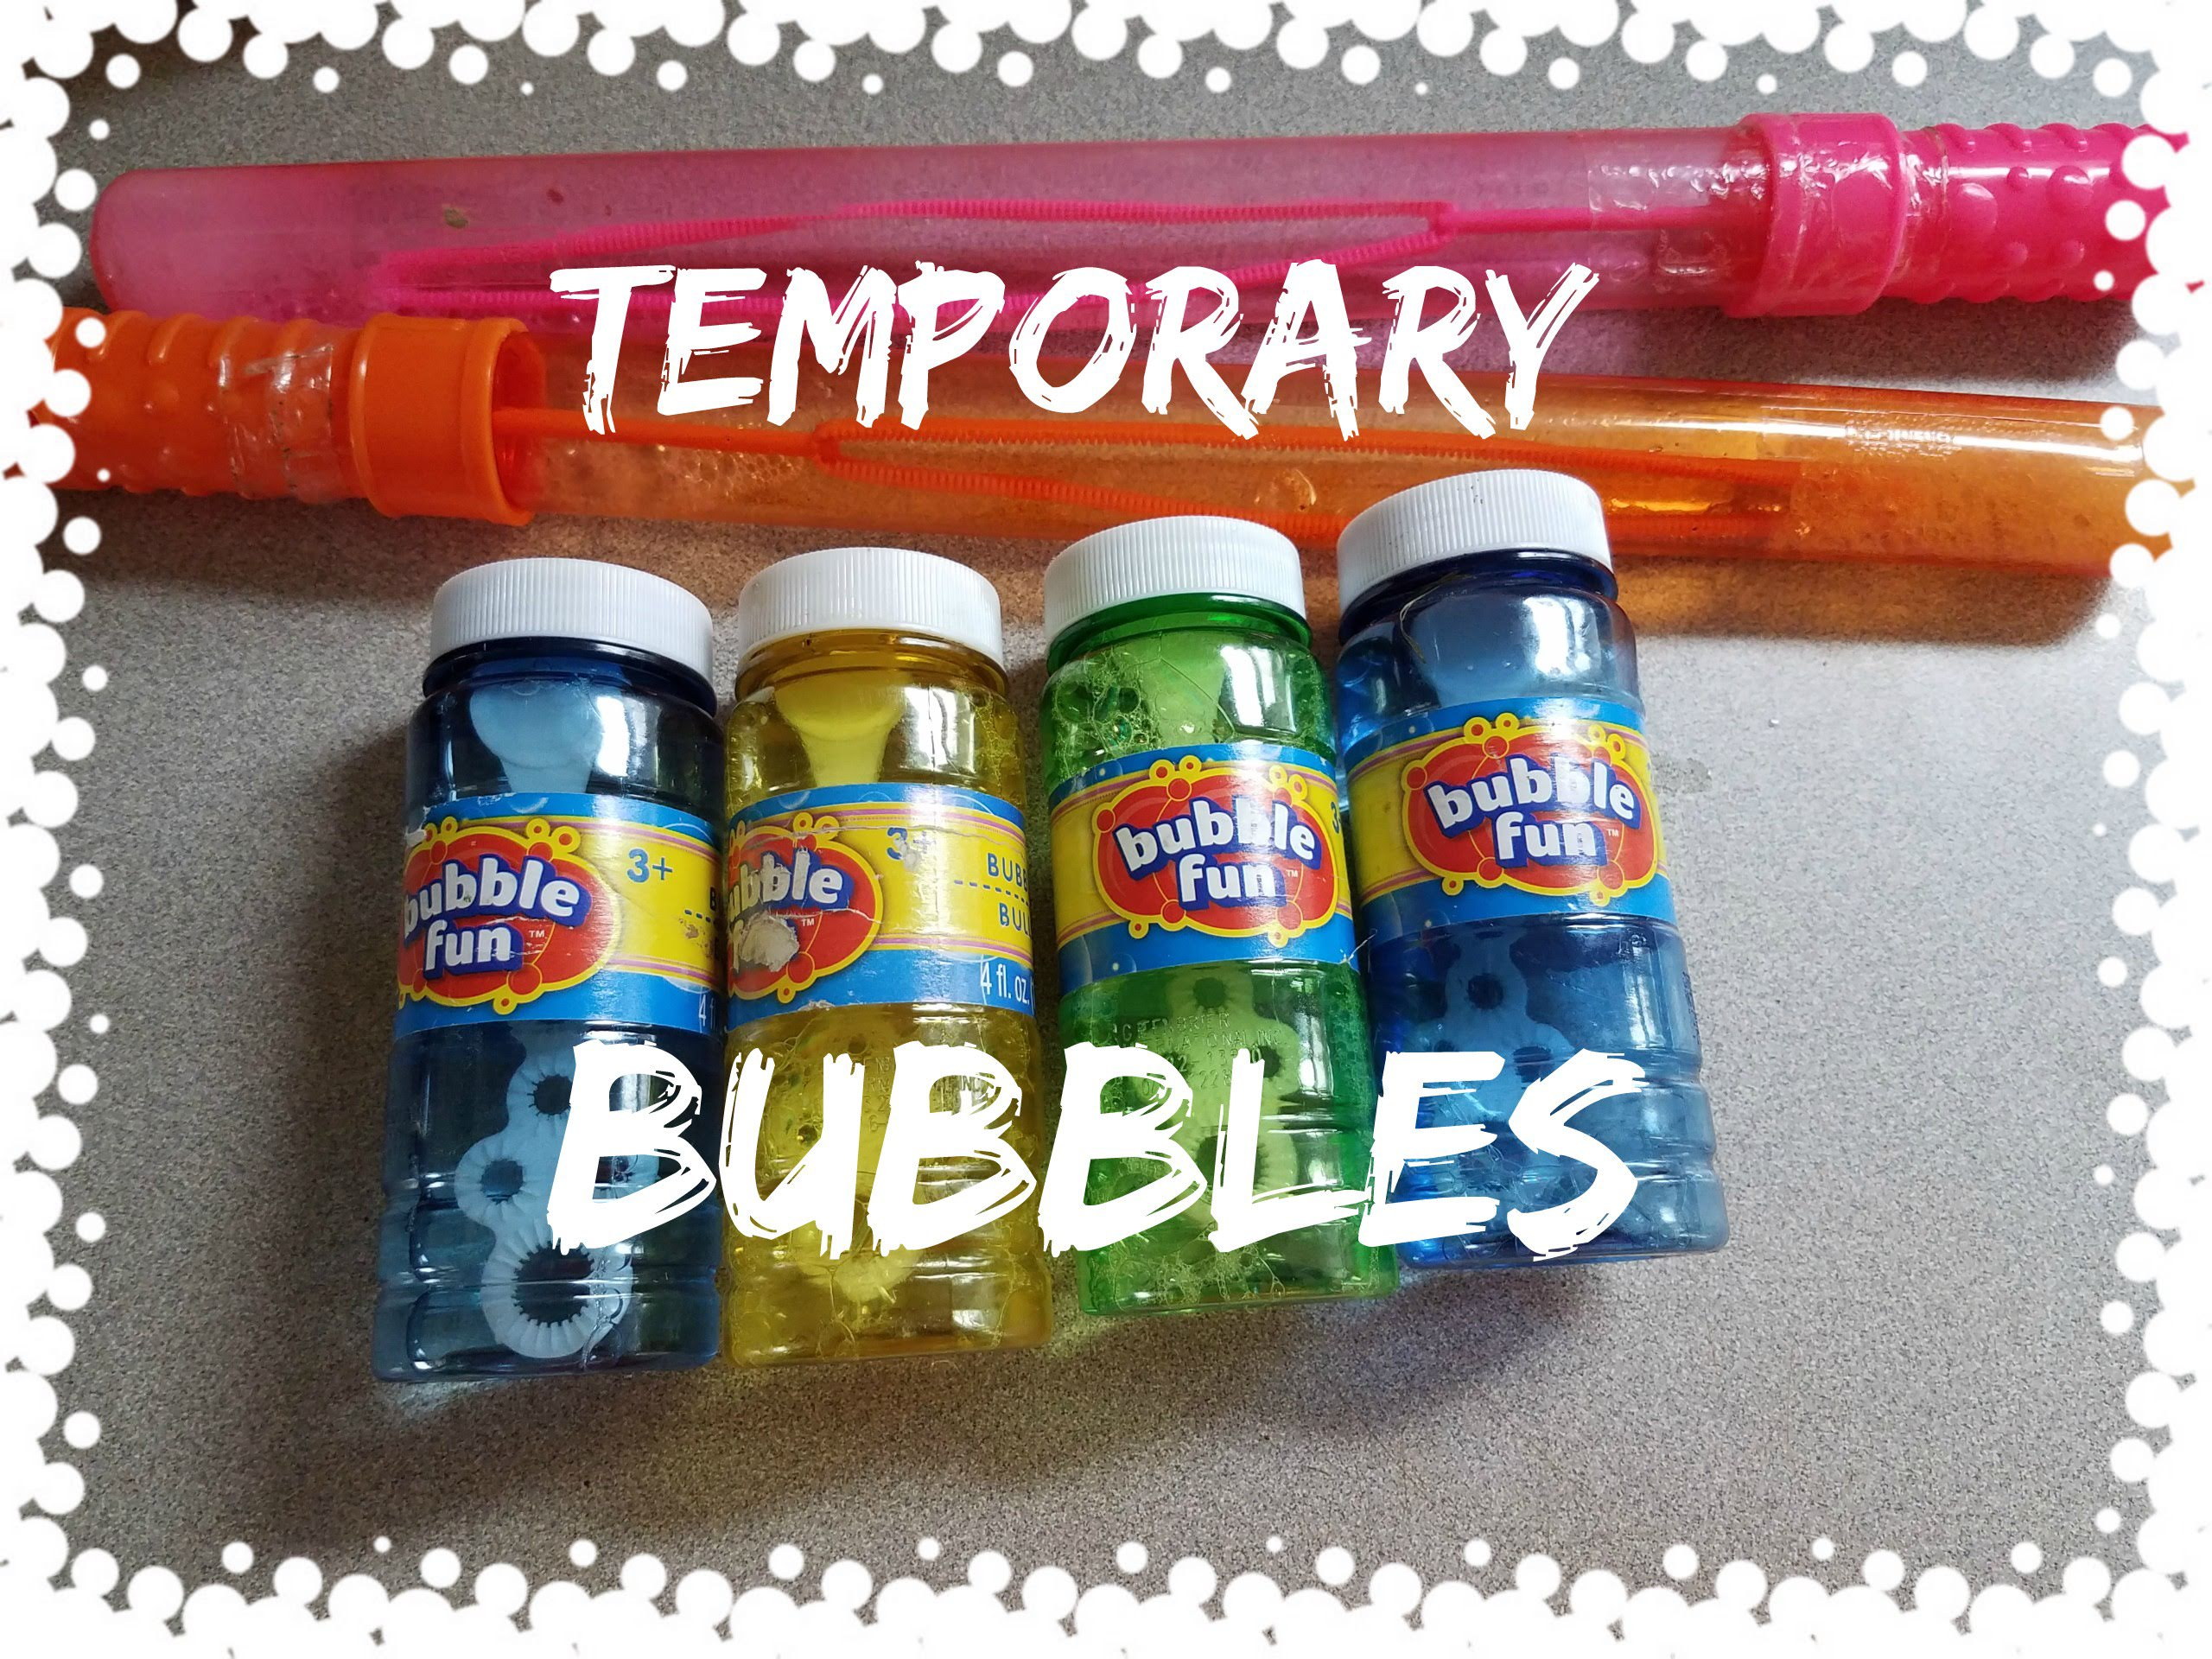 Temporary Bubbles